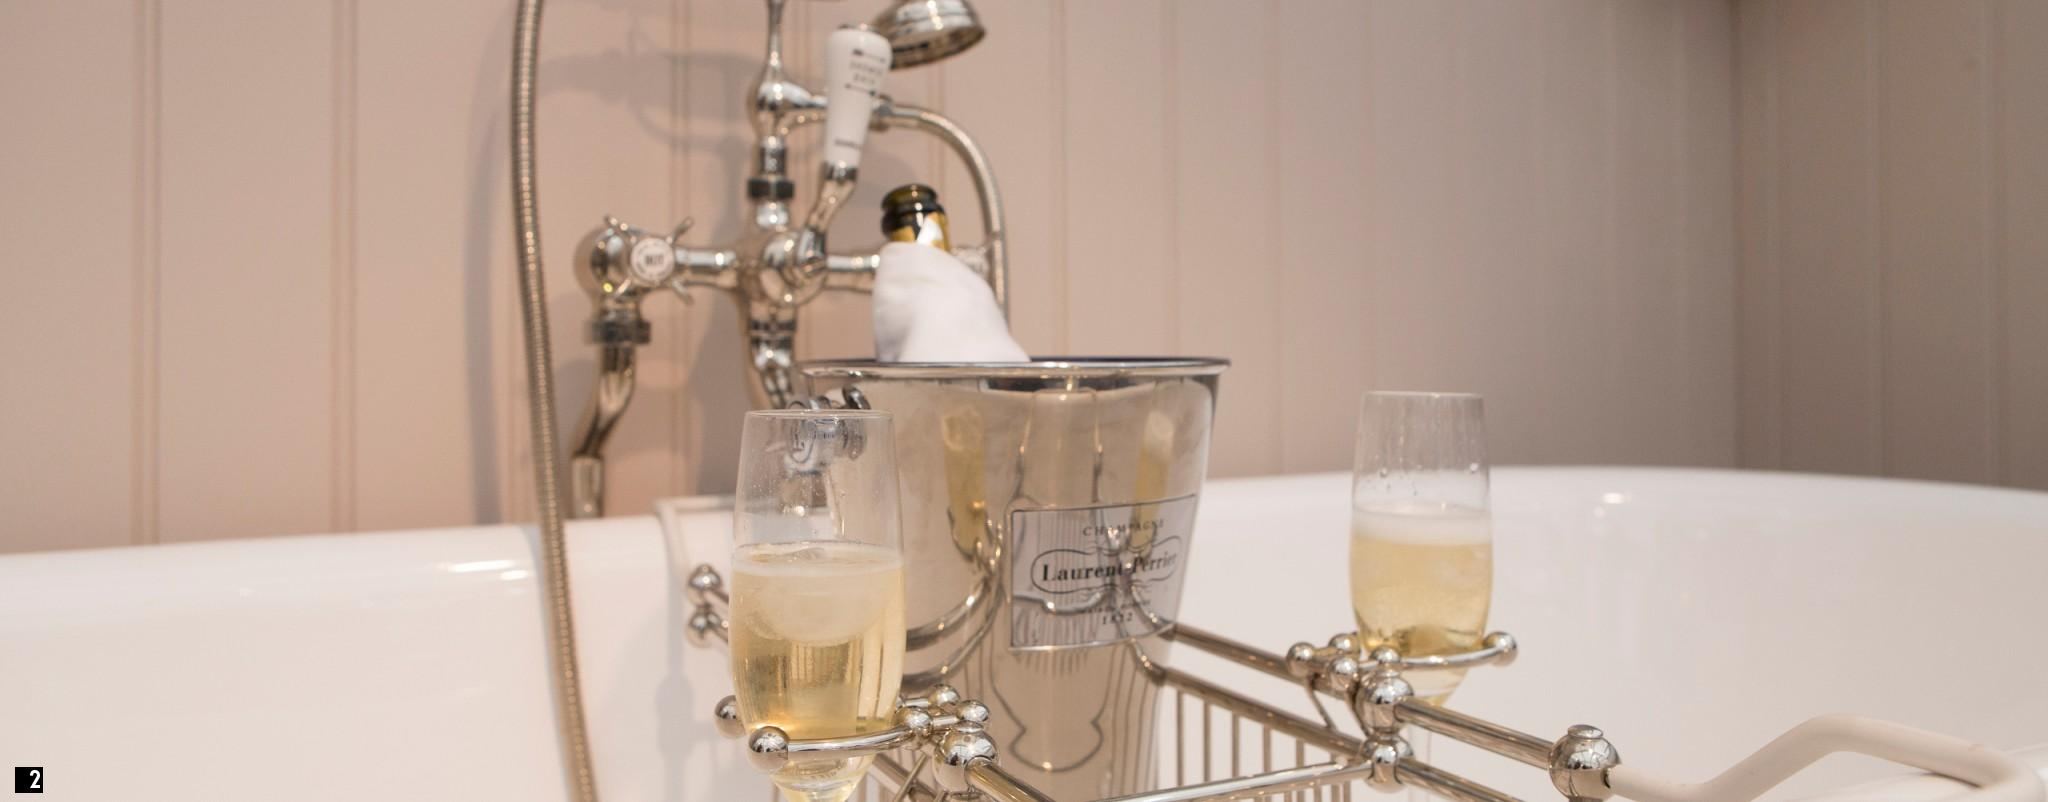 chadder luxury bathroom accessories - bath rack